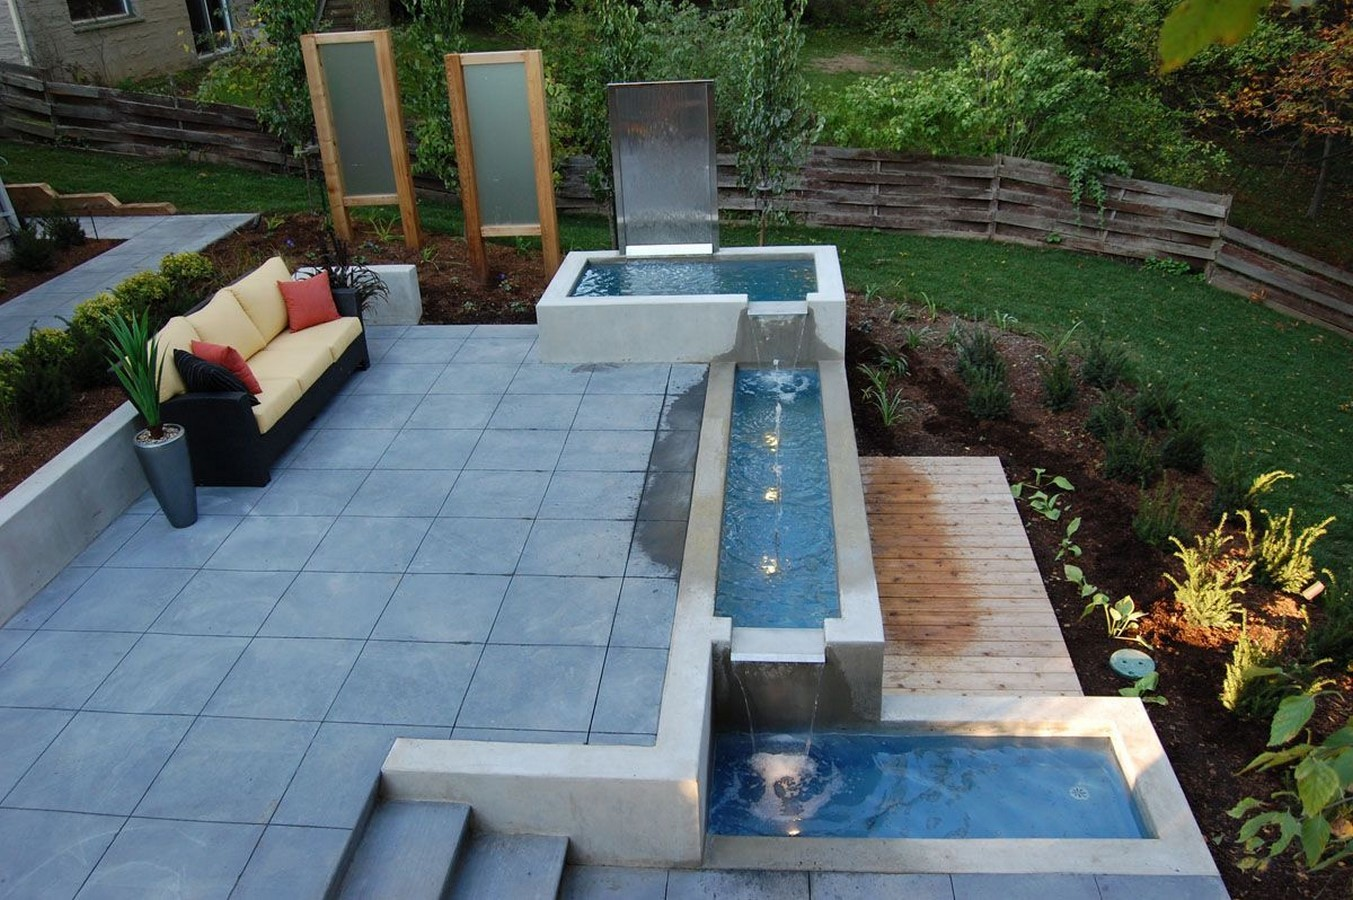 50 Ideas and Tips for Landscaping - Sheet36